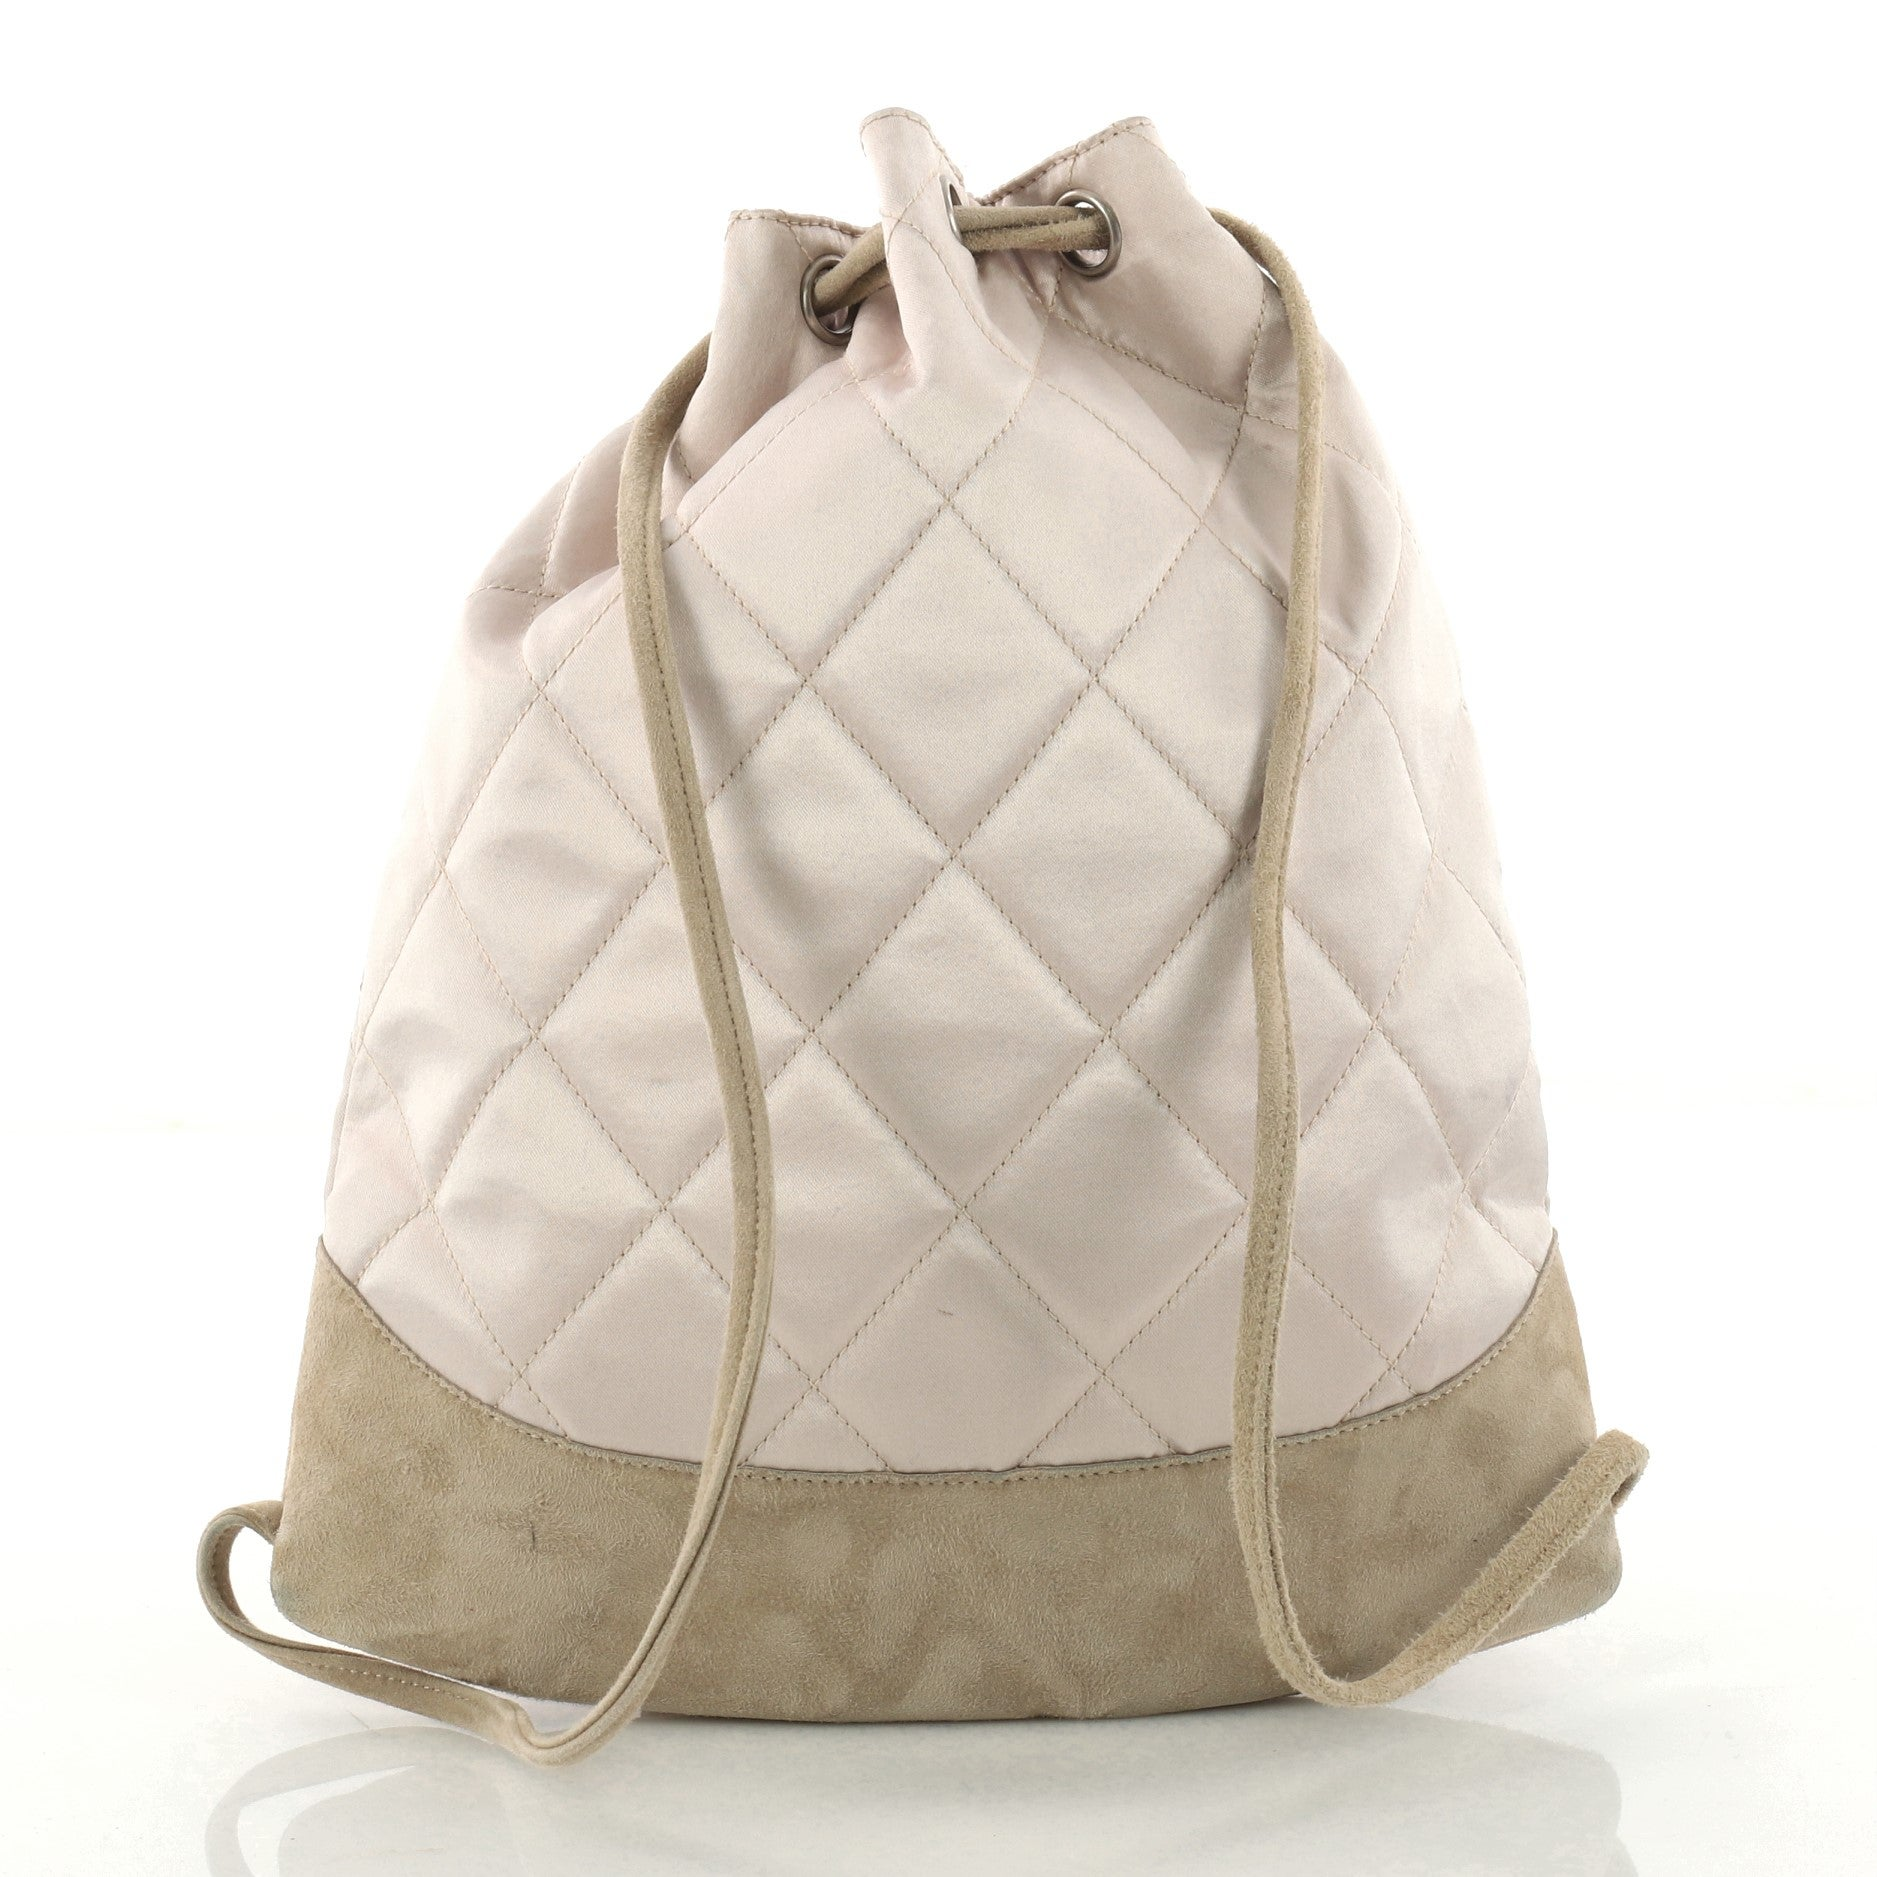 5cddfc0e4de081 Chanel Vintage Drawstring Backpack Quilted Satin with Suede Medium at  1stdibs